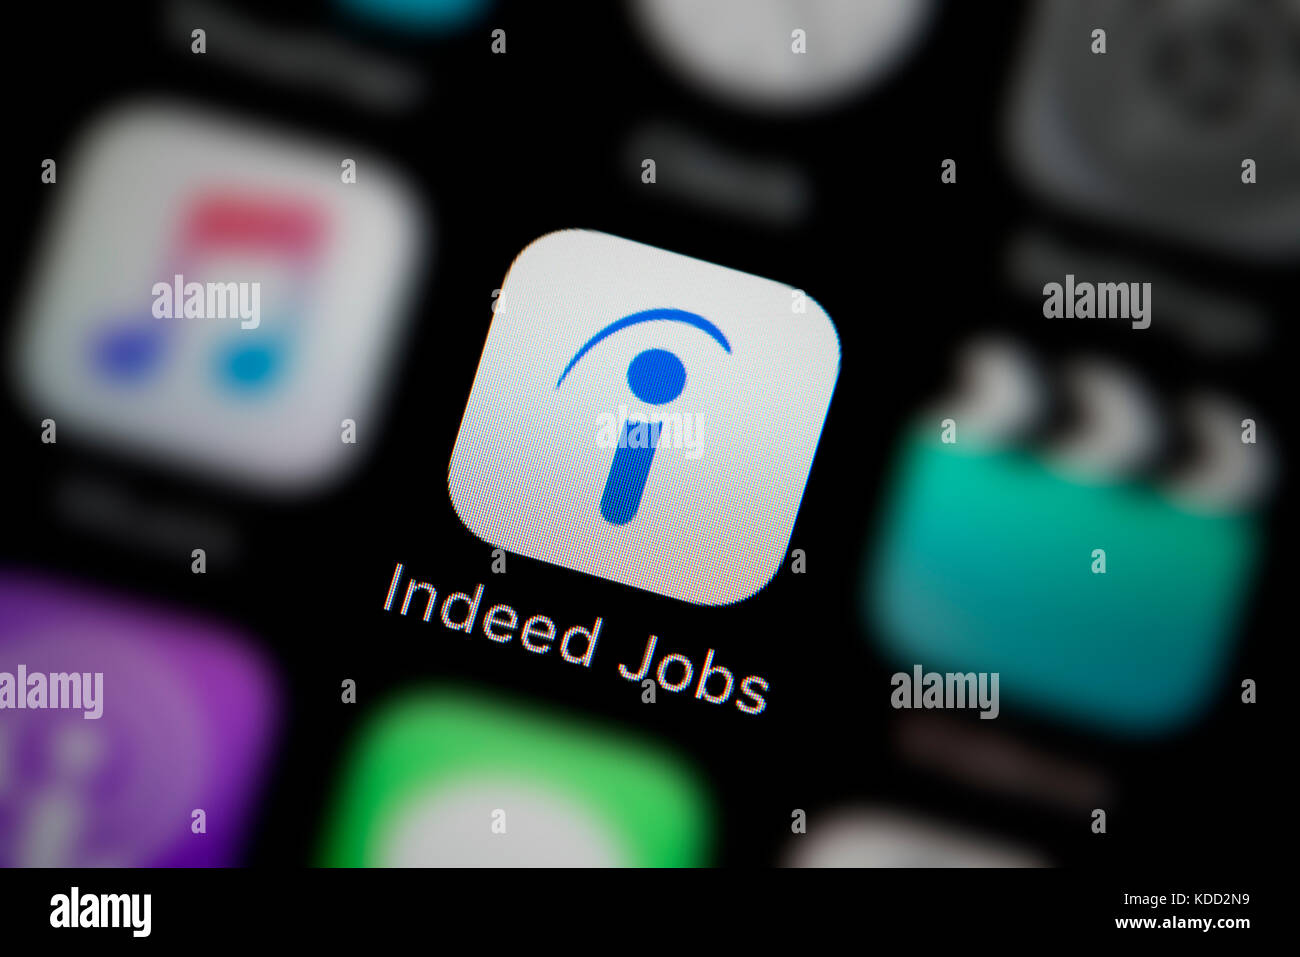 Arbeitsagentur Indeed Berufe Stockfotos Berufe Bilder Alamy